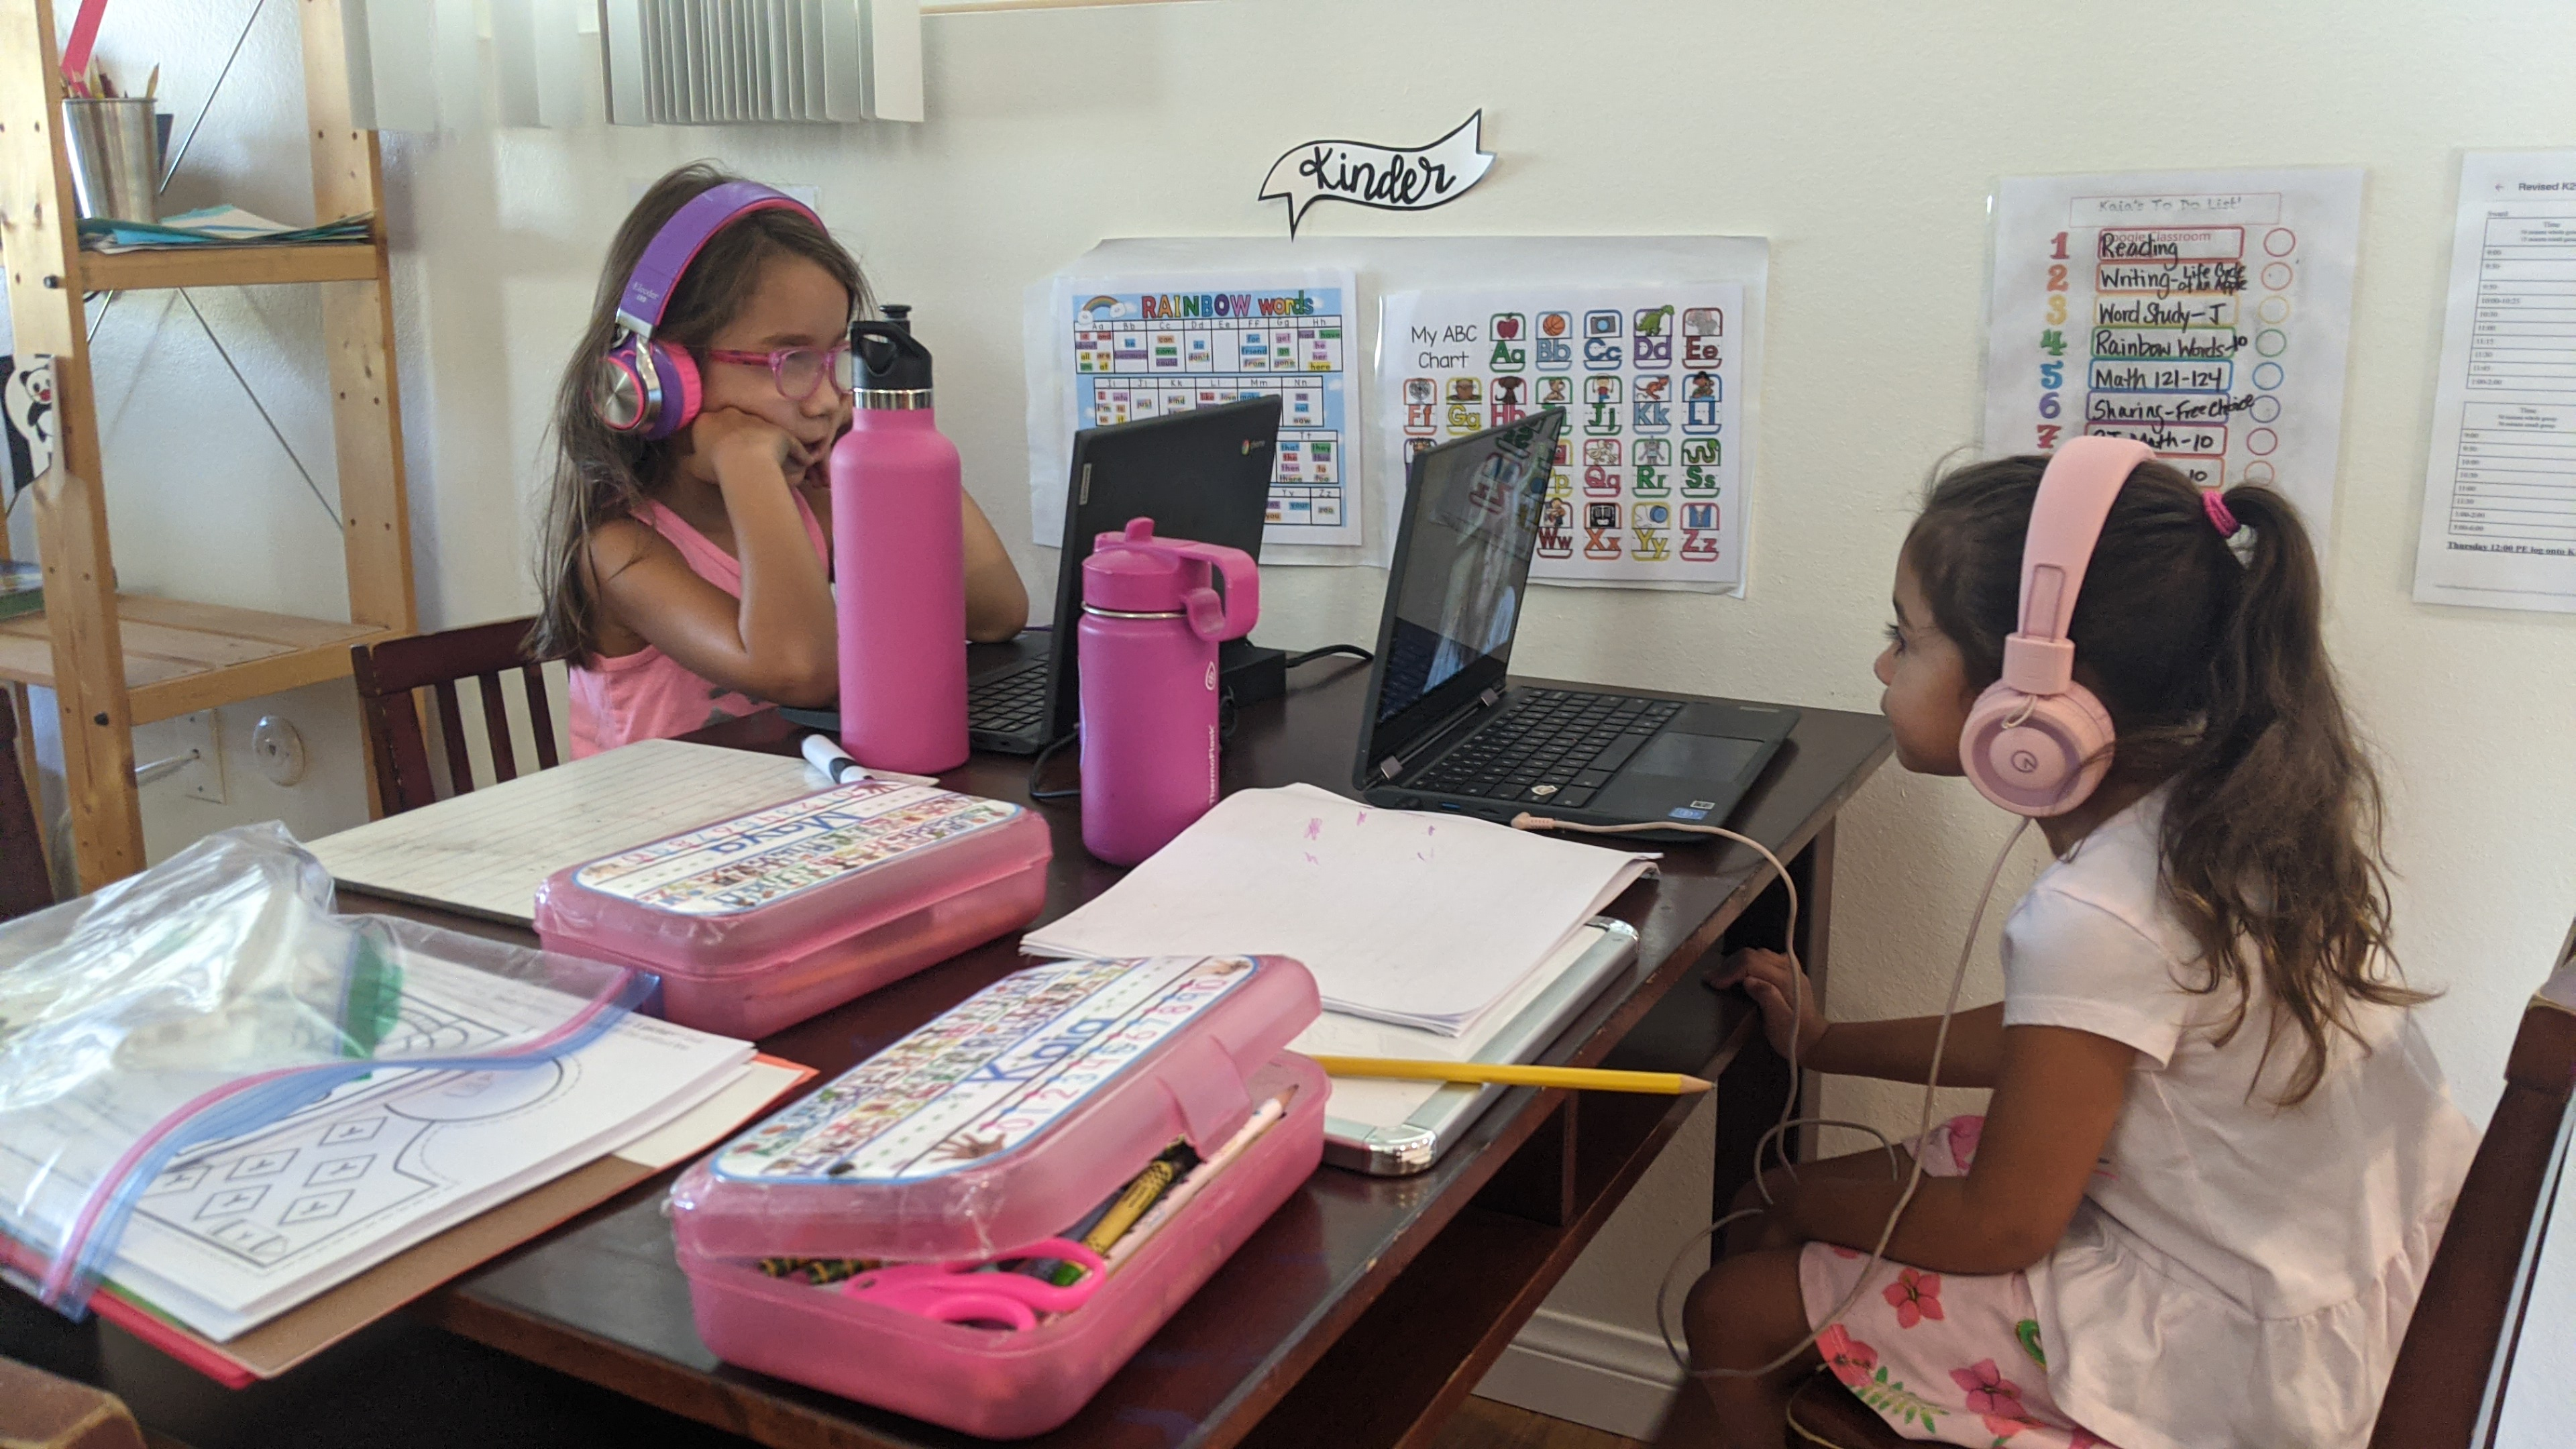 Experiences With Remote Kindergarten Show Equity Divide